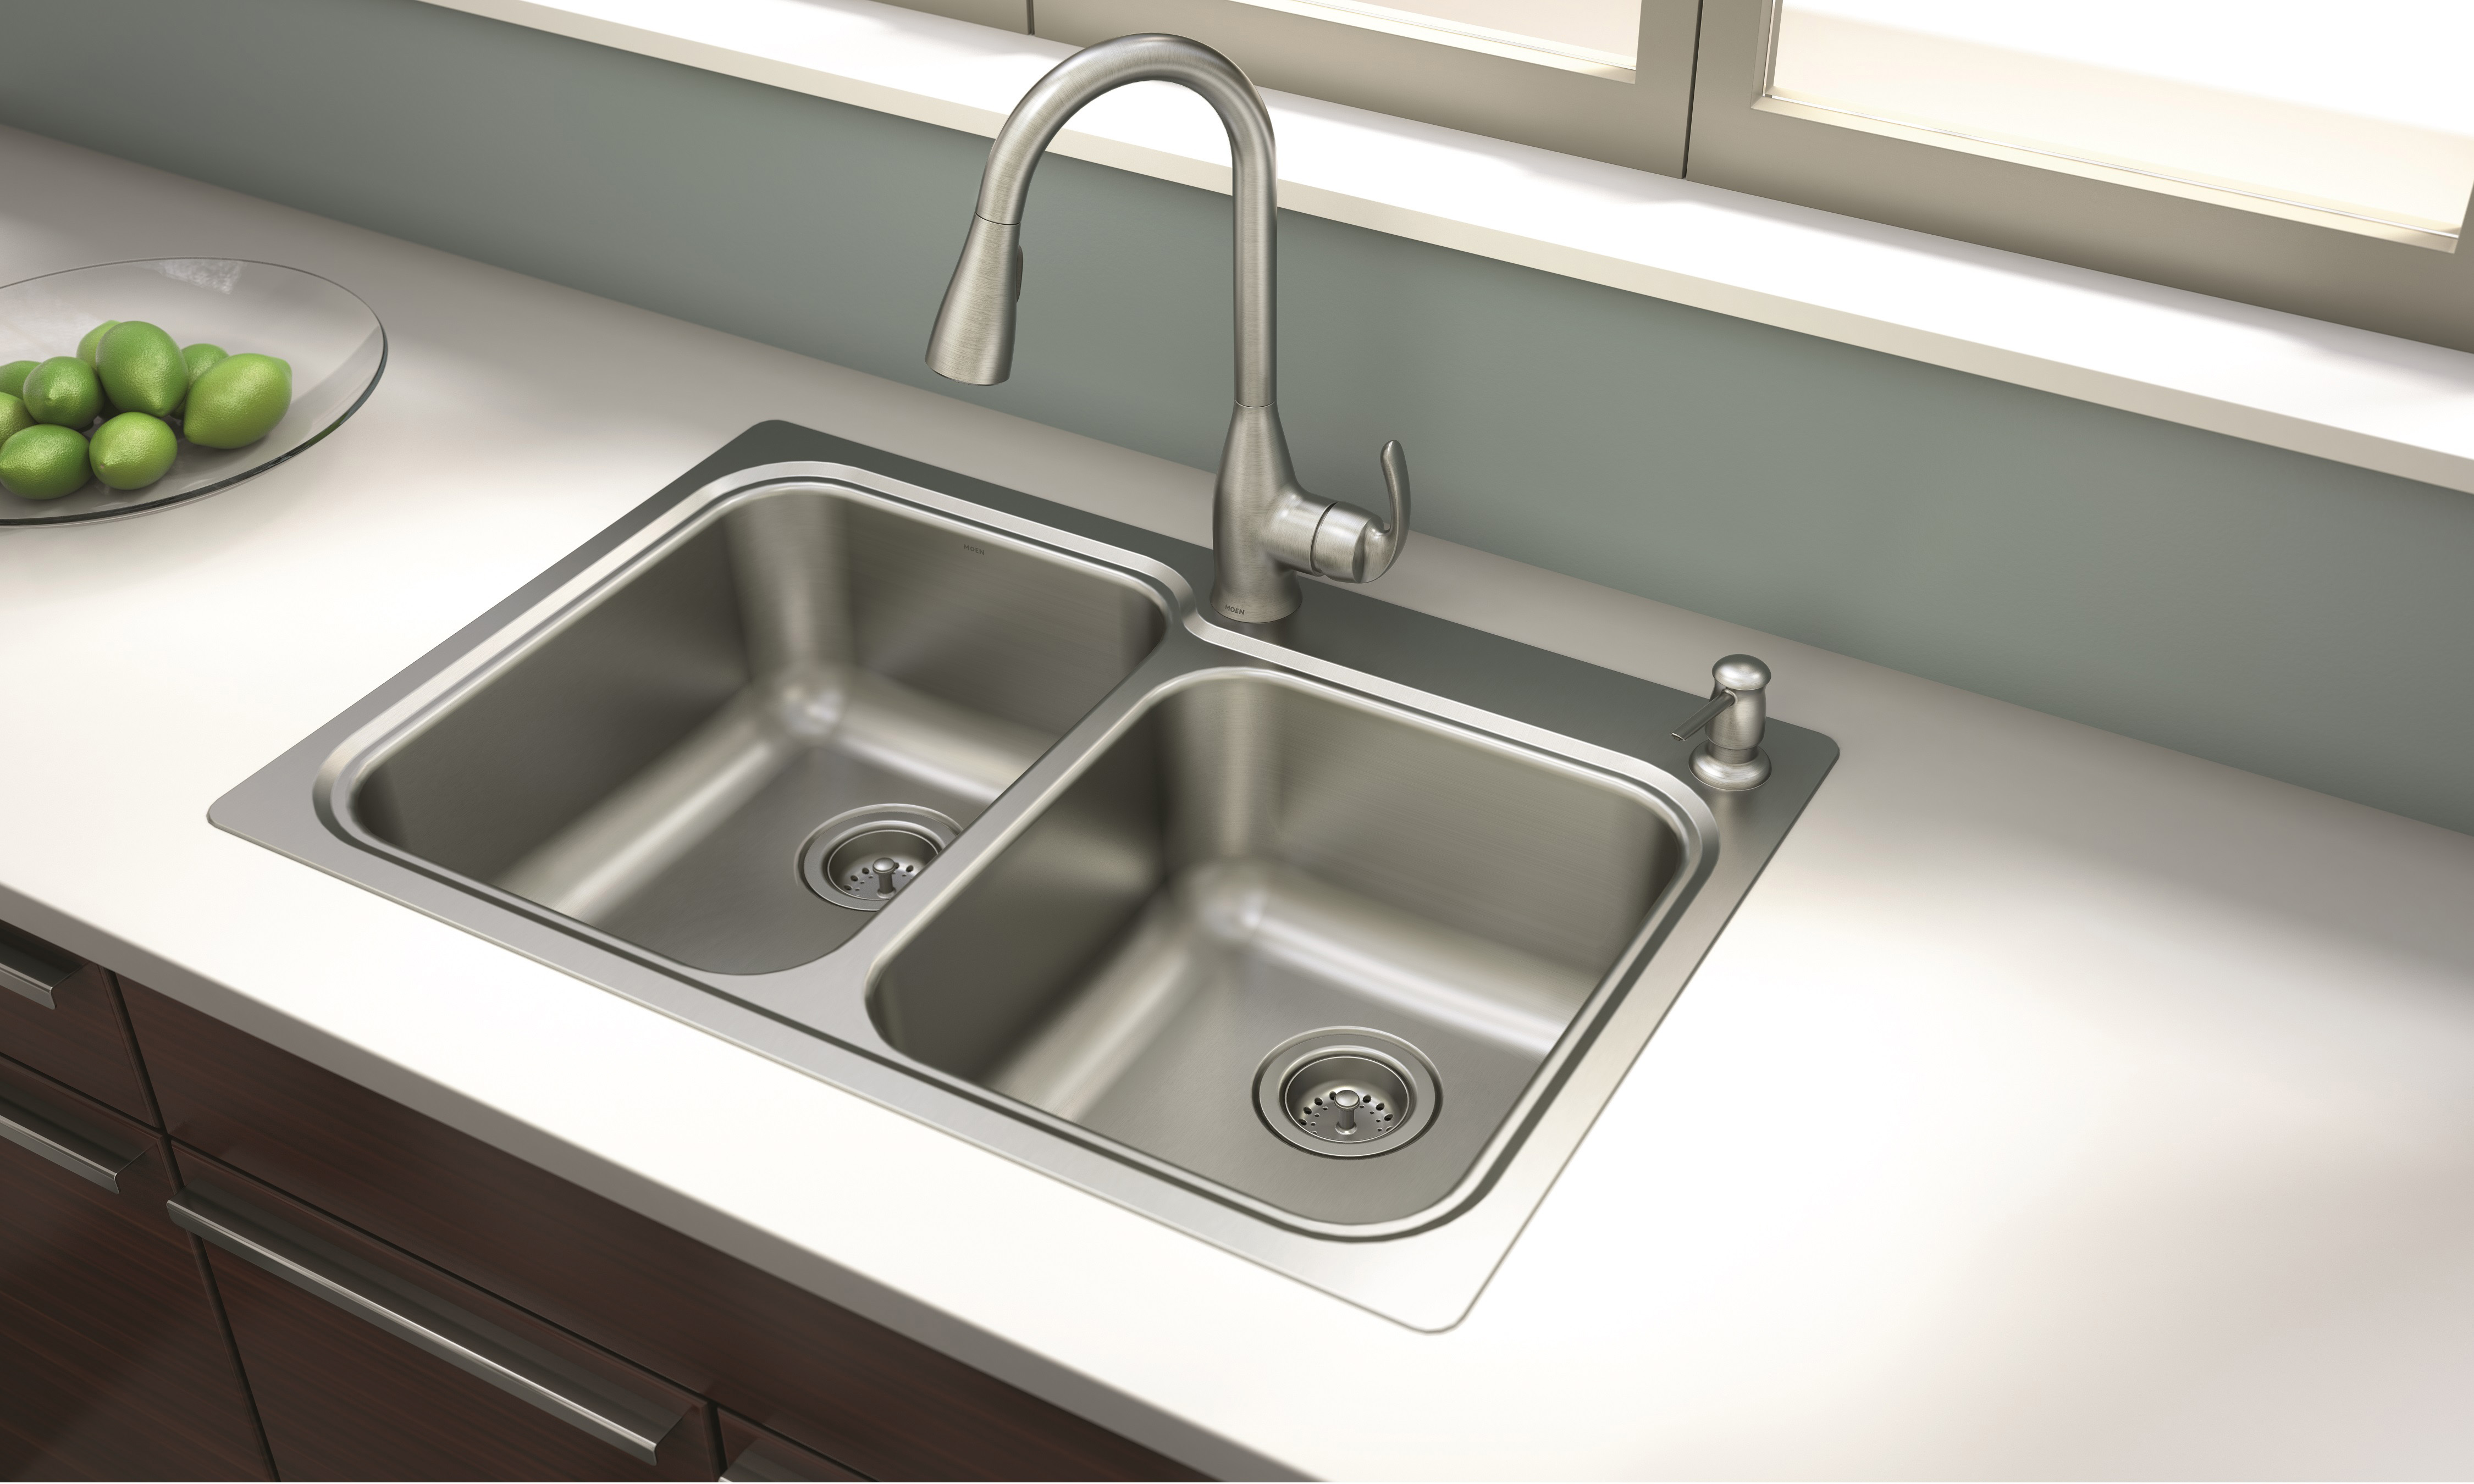 Bathroom Sinks Moen moen premieres its latest kitchen and bath innovations at design